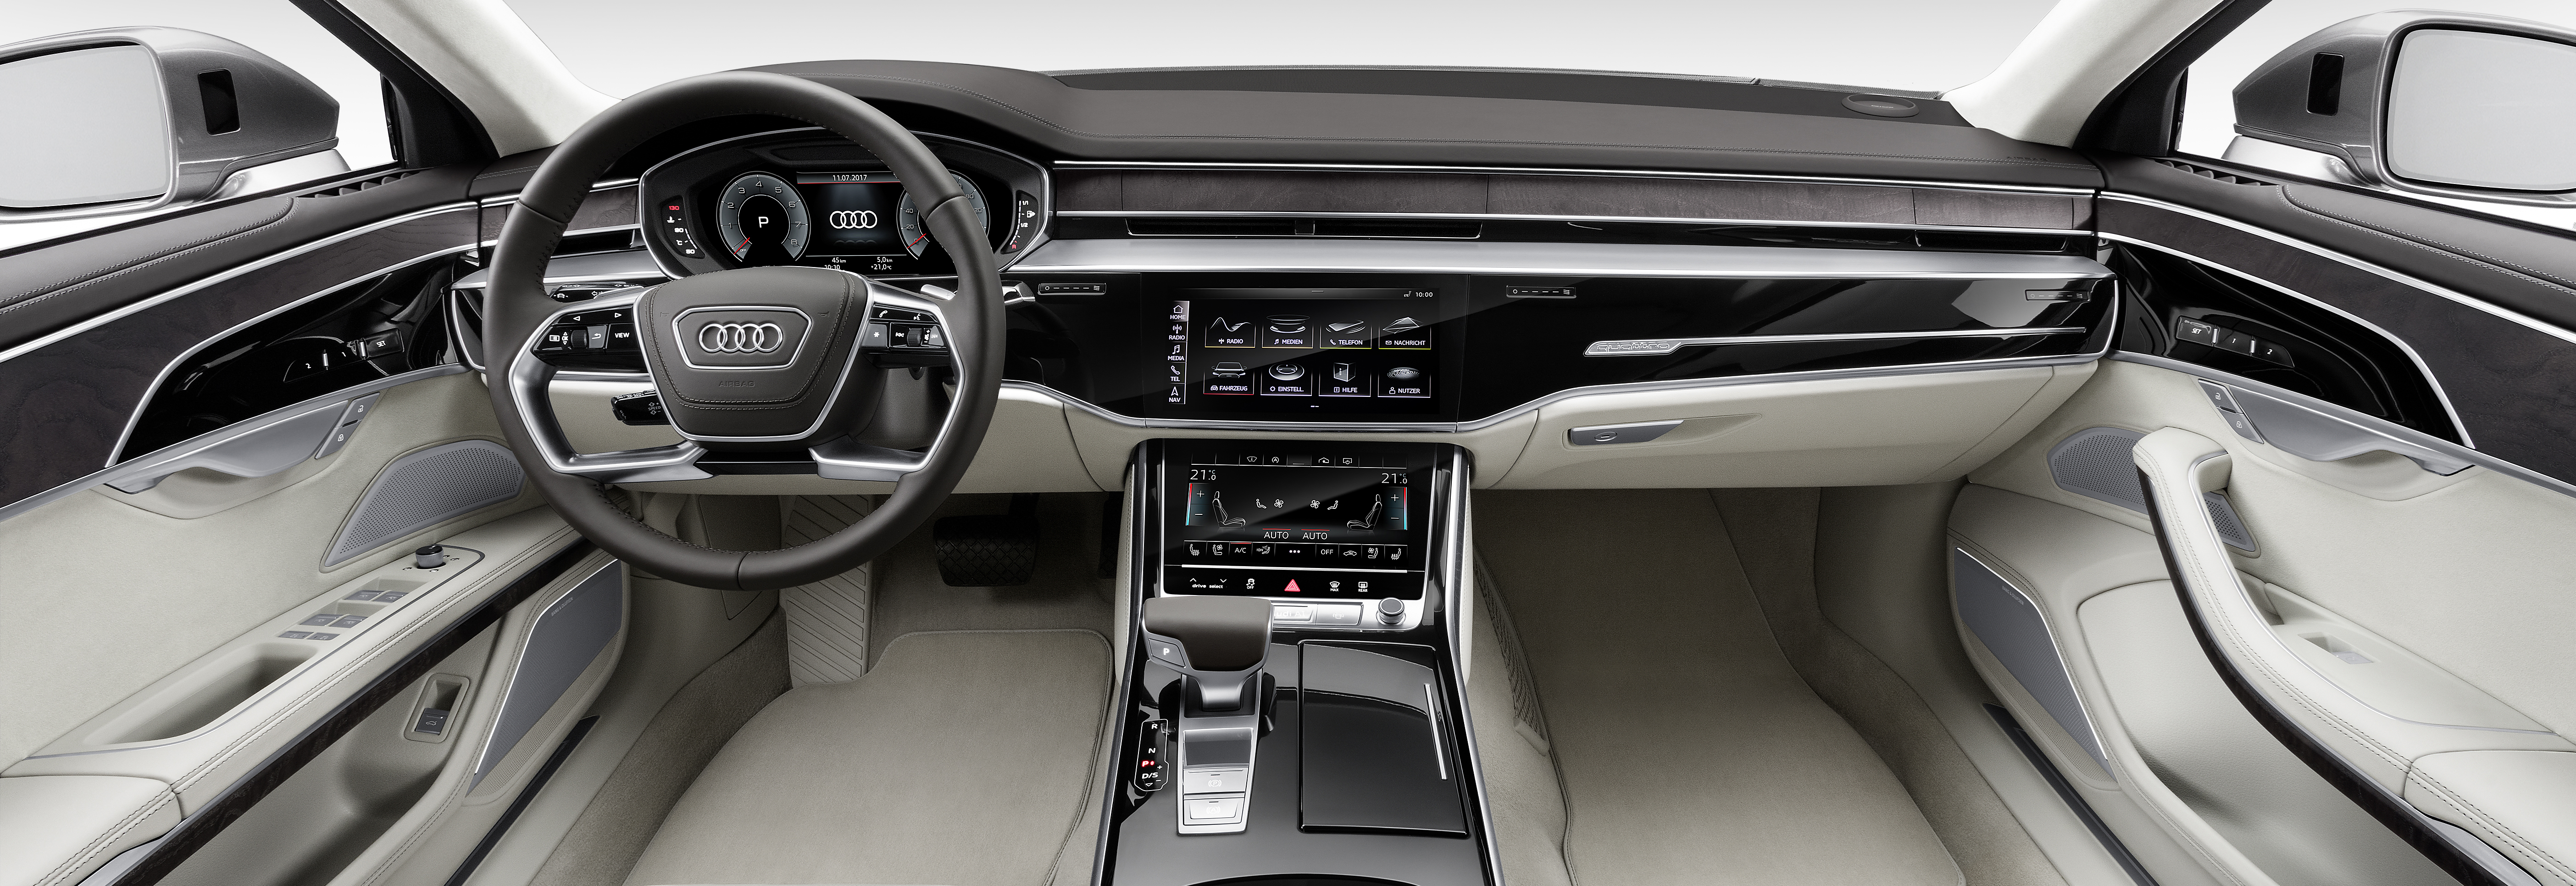 2018 audi a6 interior. fine interior 2018 audi a8 interior dashboard throughout a6